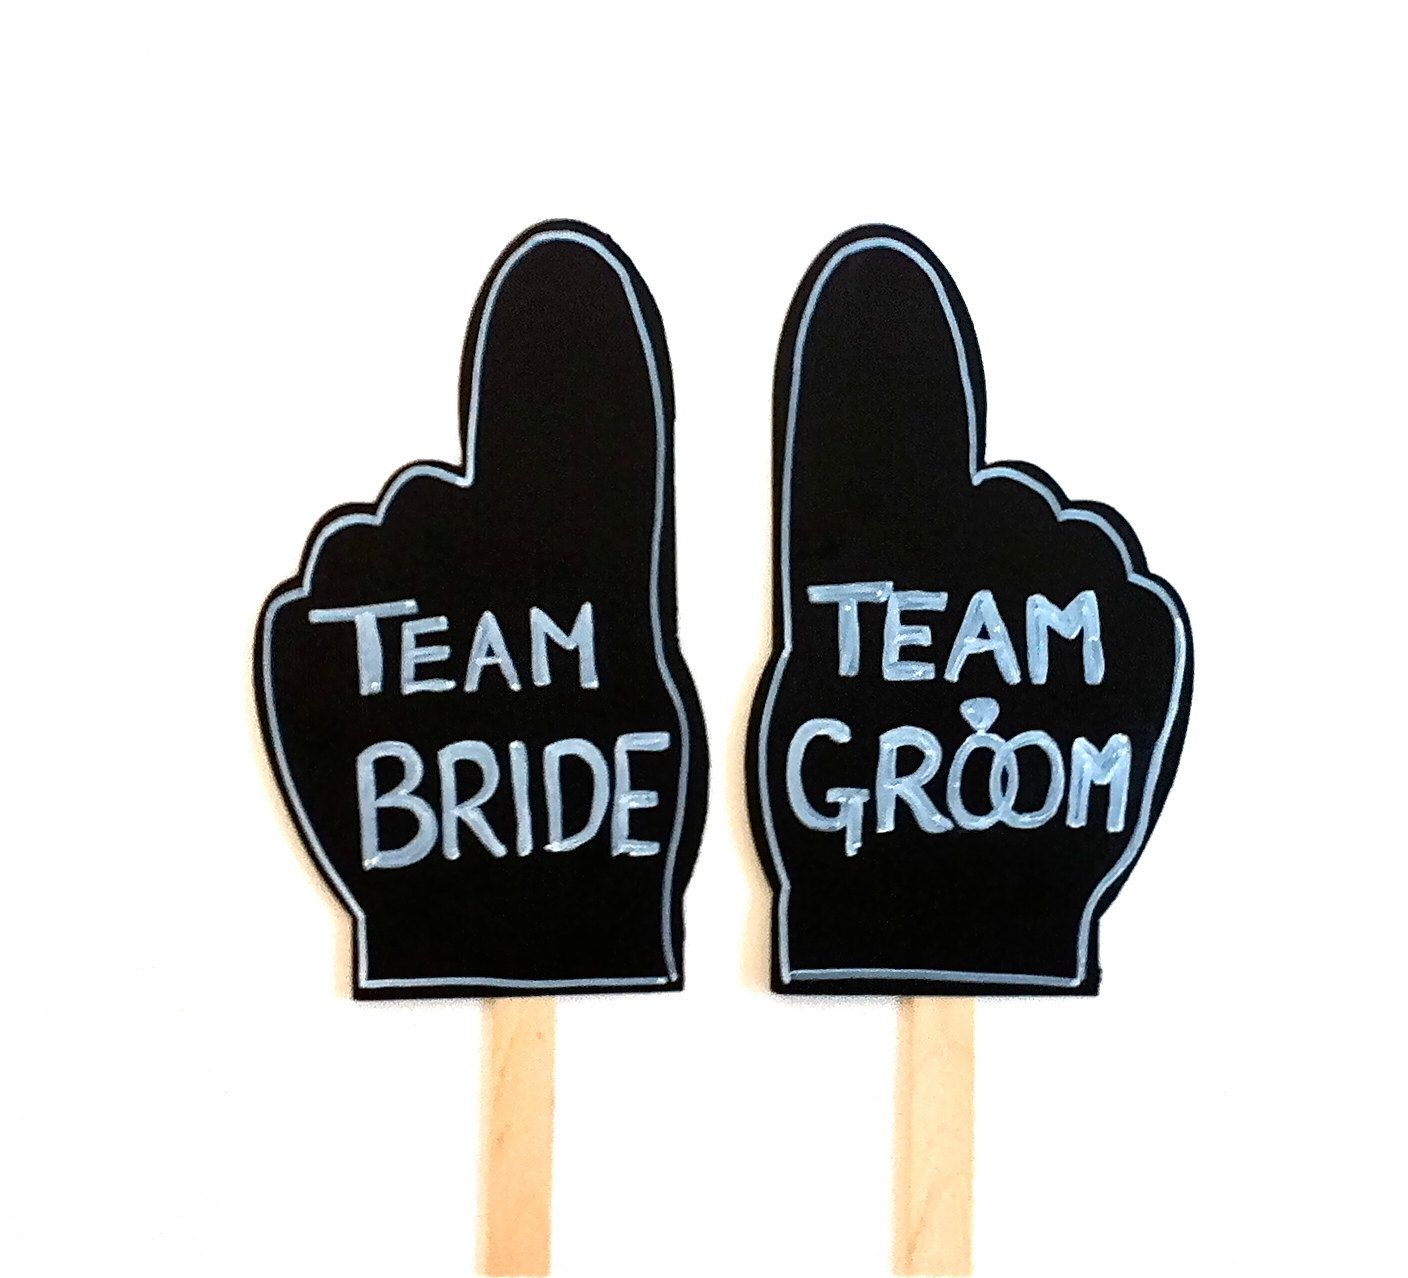 wedding photo booth props Items similar to 2 Chalkboard Fingers Photo Booth Props Team Bride and Team Groom Hand Finger Signs Props Chalk board Photobooth Props Wedding Decoration on